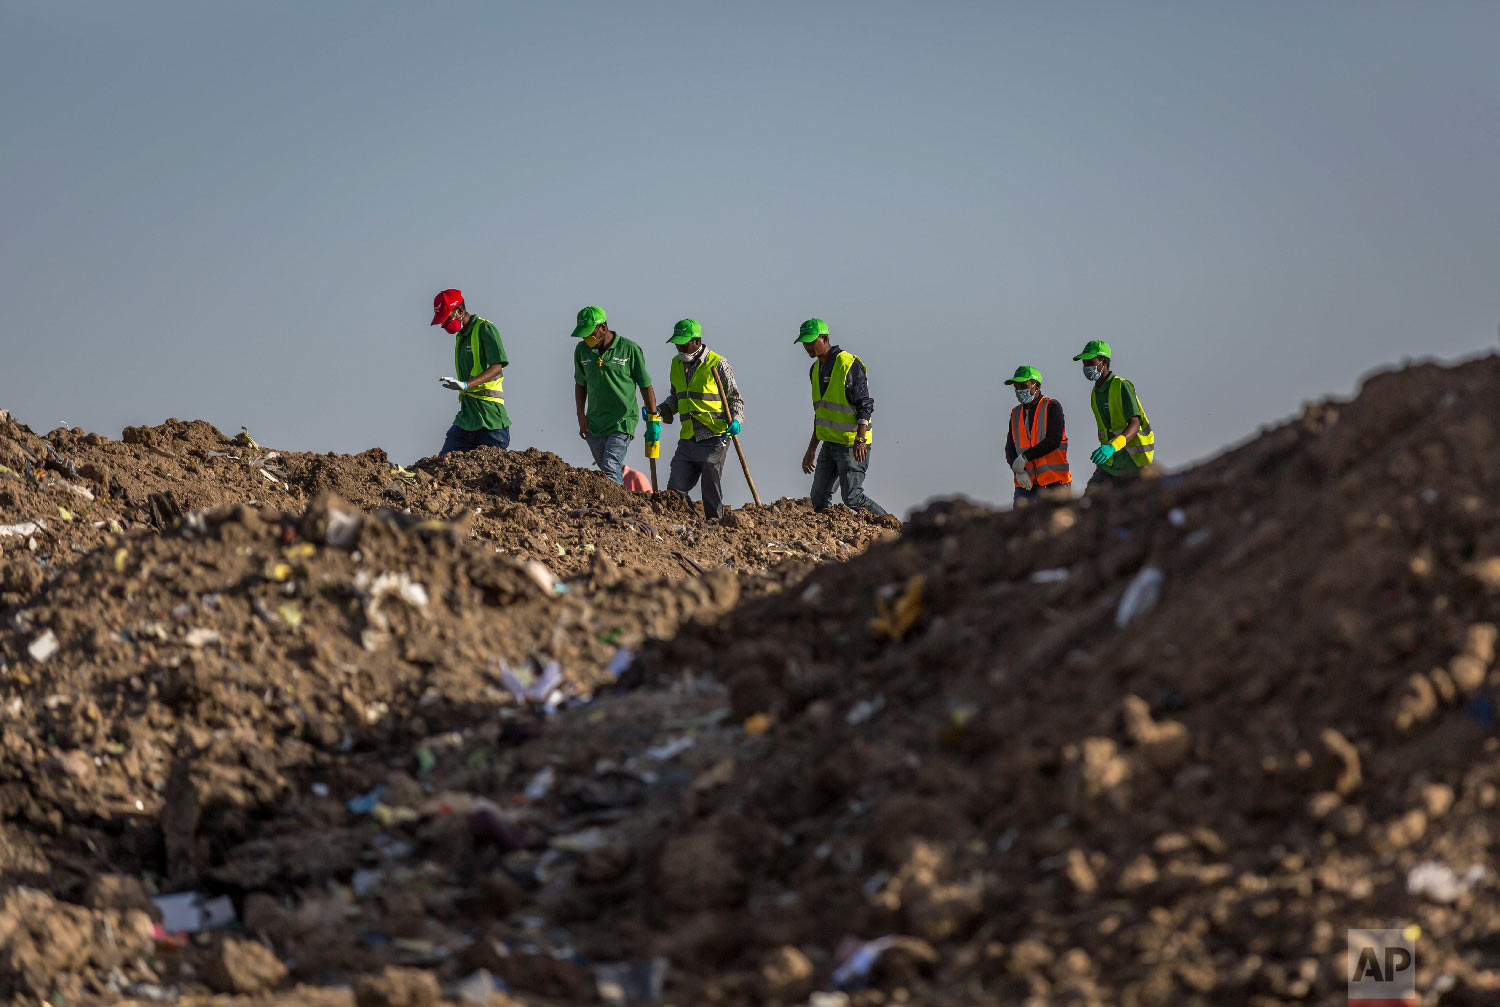 Workers walk to collect clothes and other materials, under the instruction of investigators March 12, 2019. (AP Photo/Mulugeta Ayene)